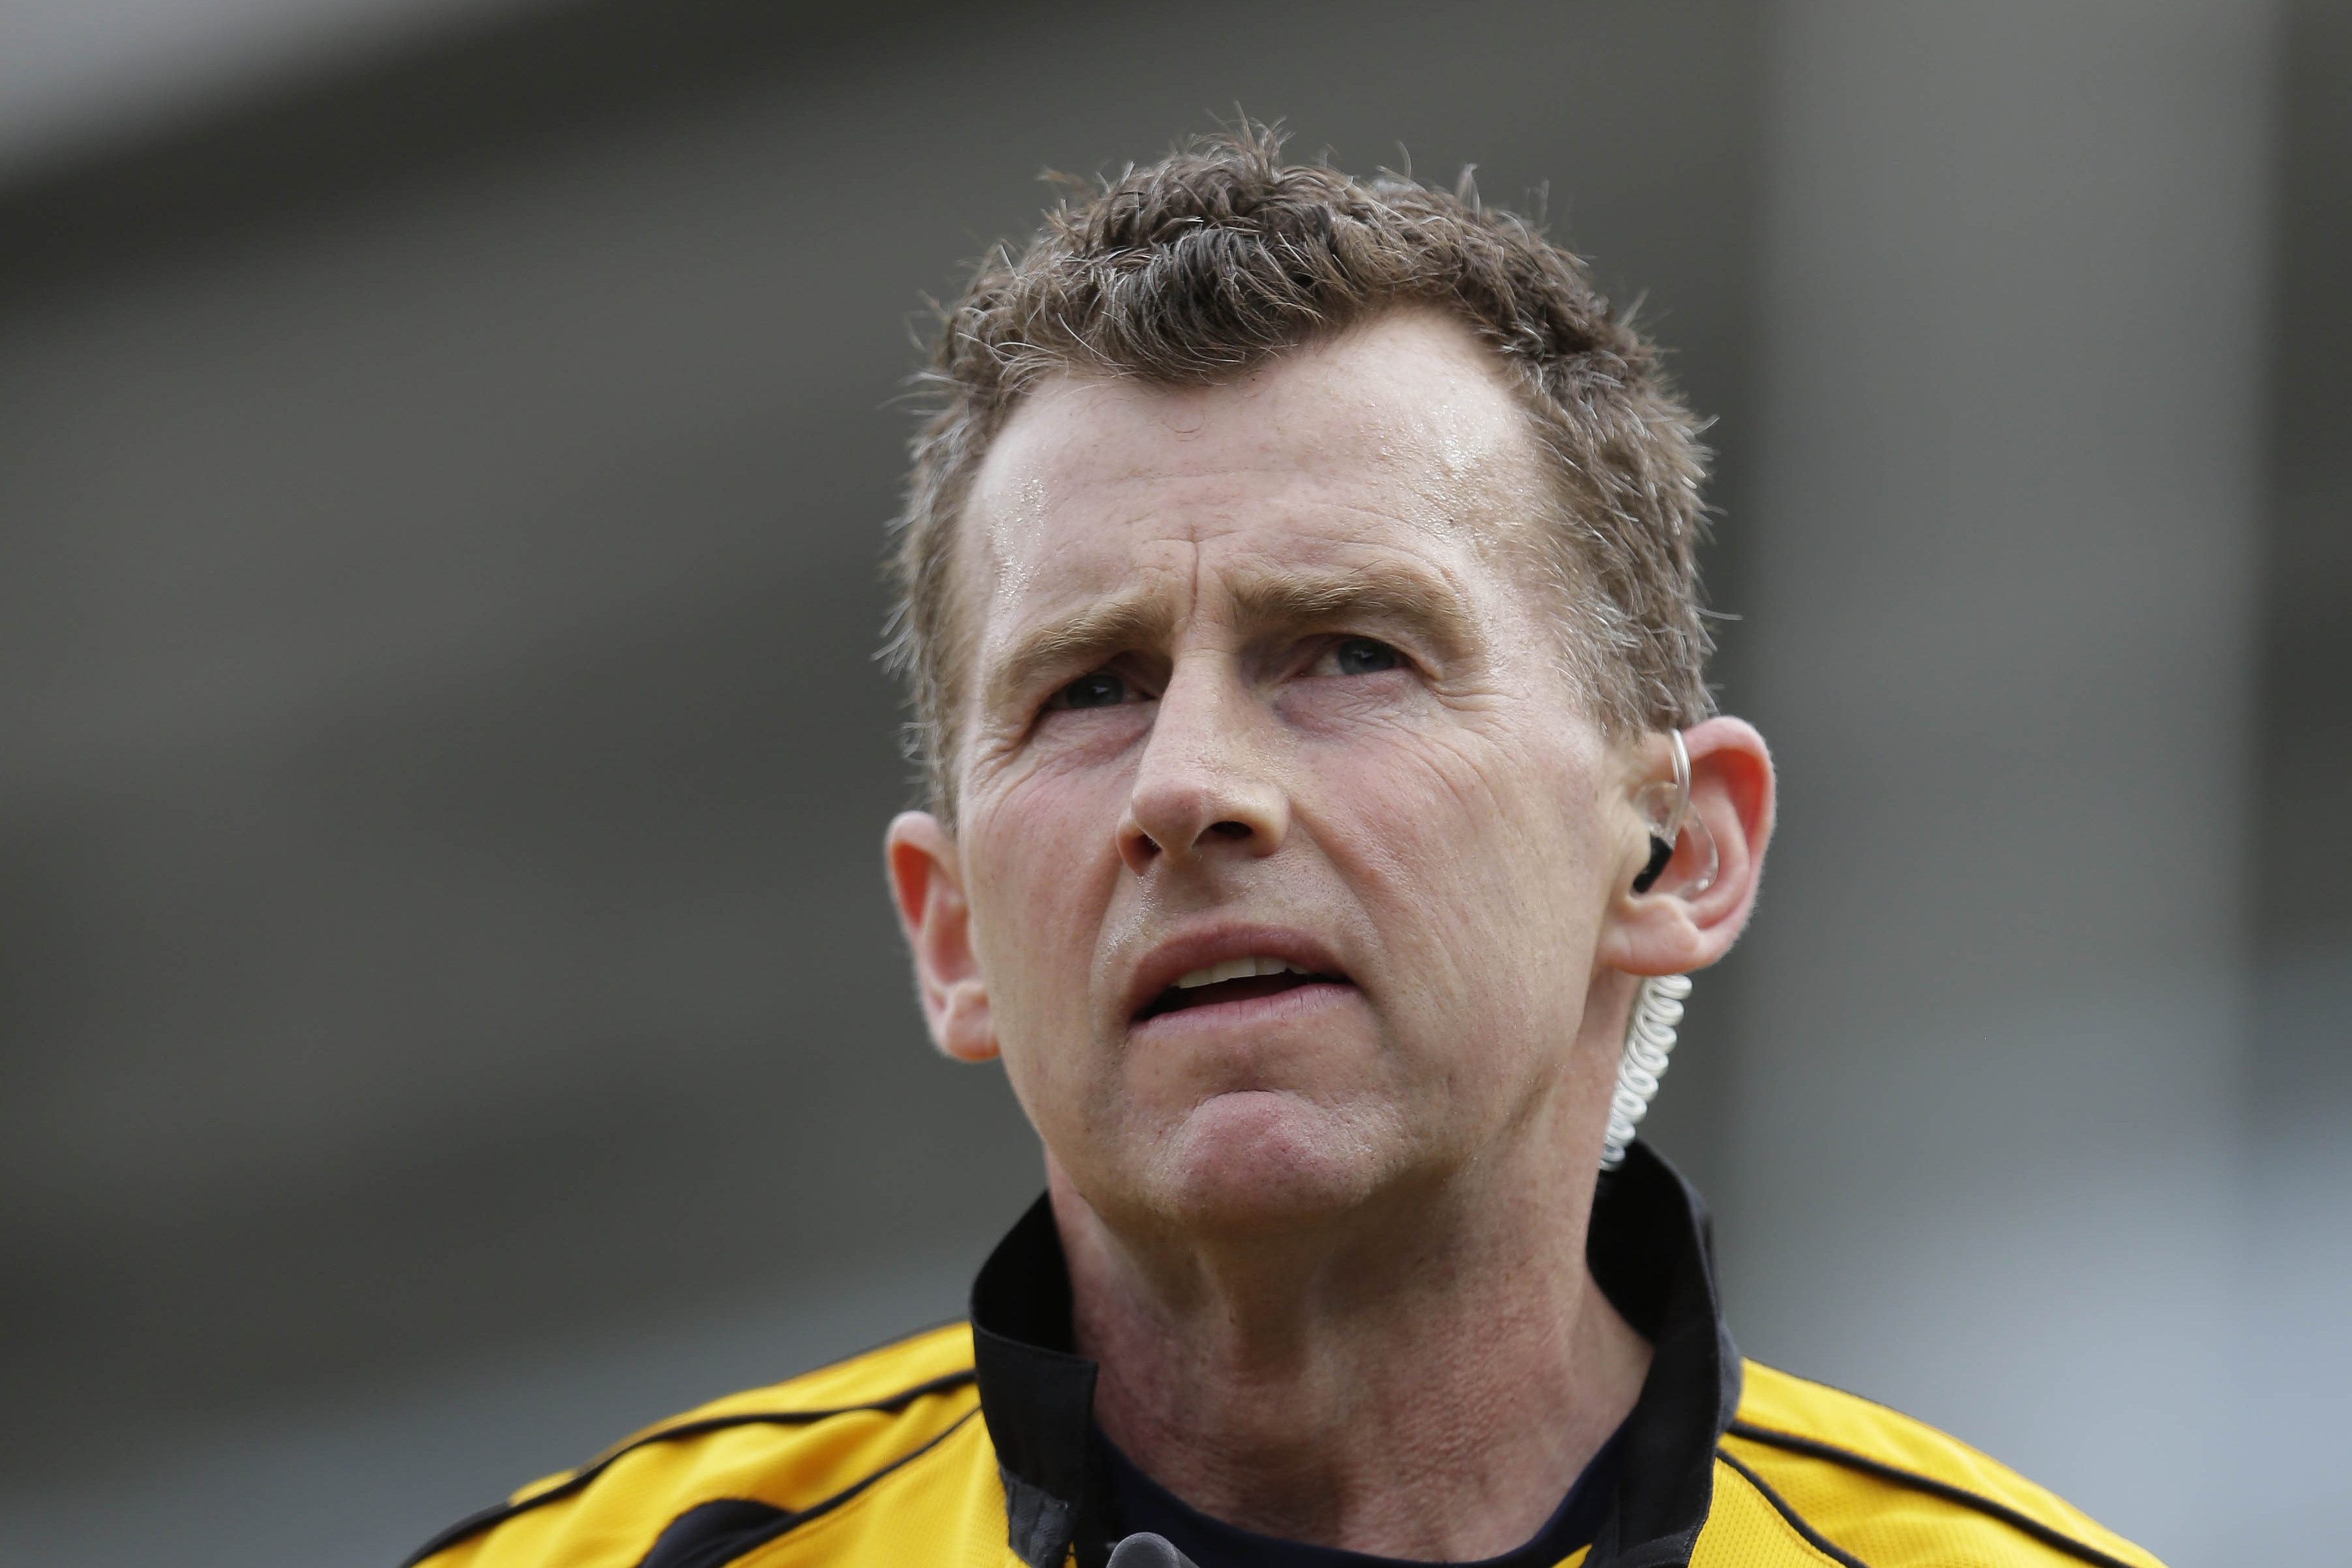 Nigel Owens is one of the most respected referees in world rugby